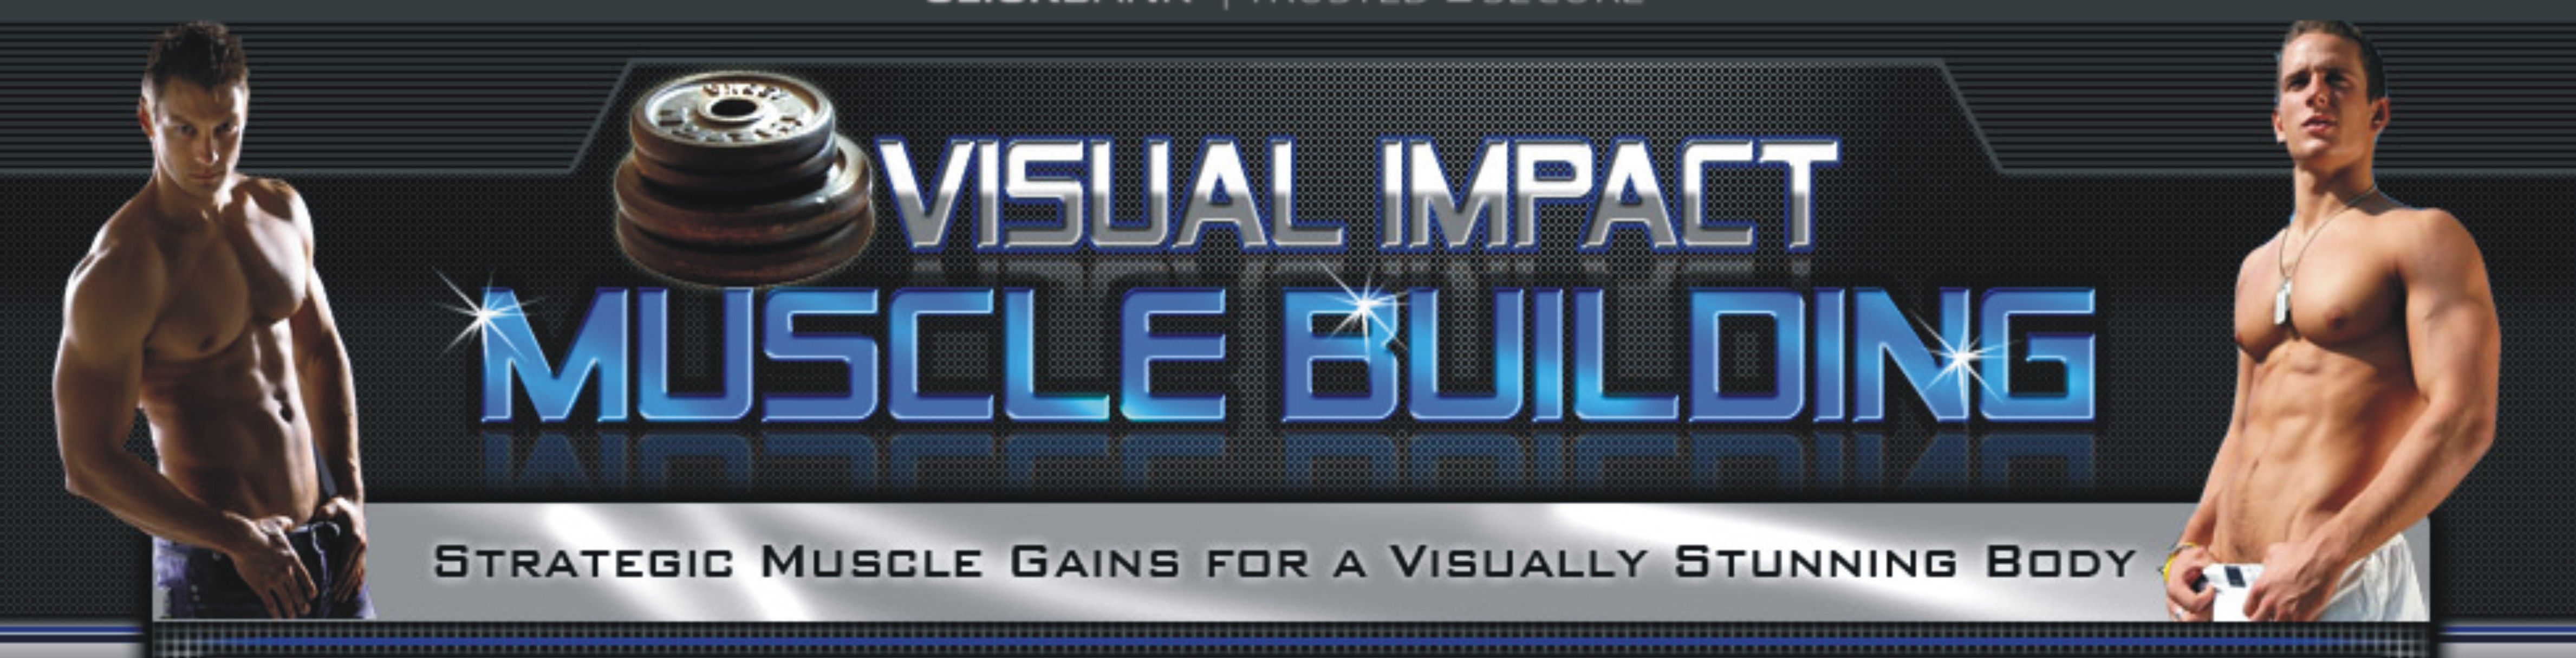 visual impact muscle building program